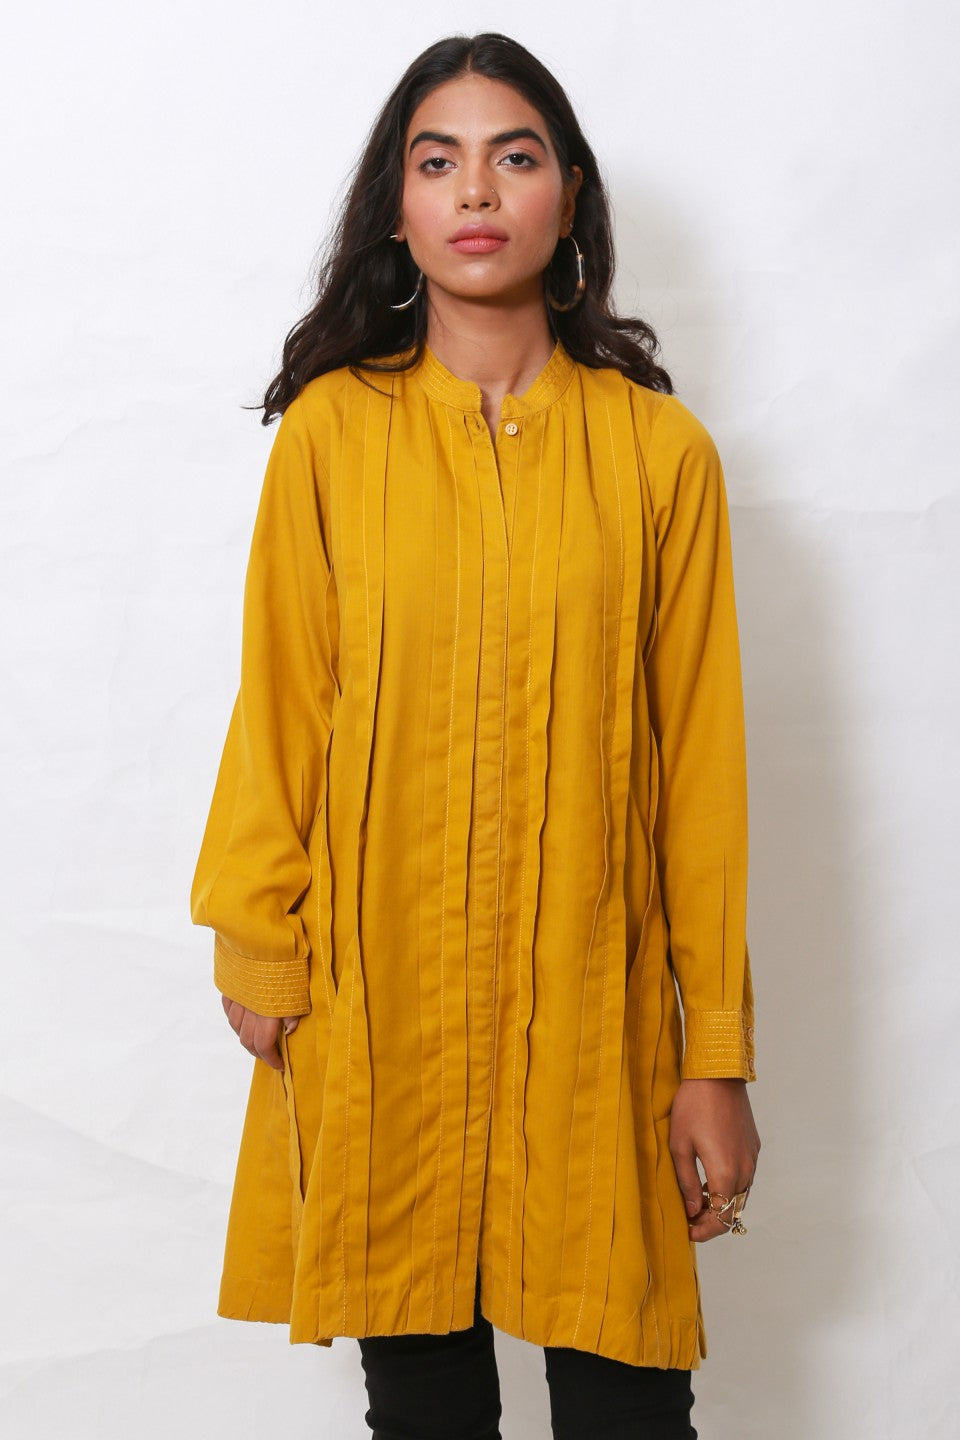 Generation - Golden Whatsup Warhol pleats tunic